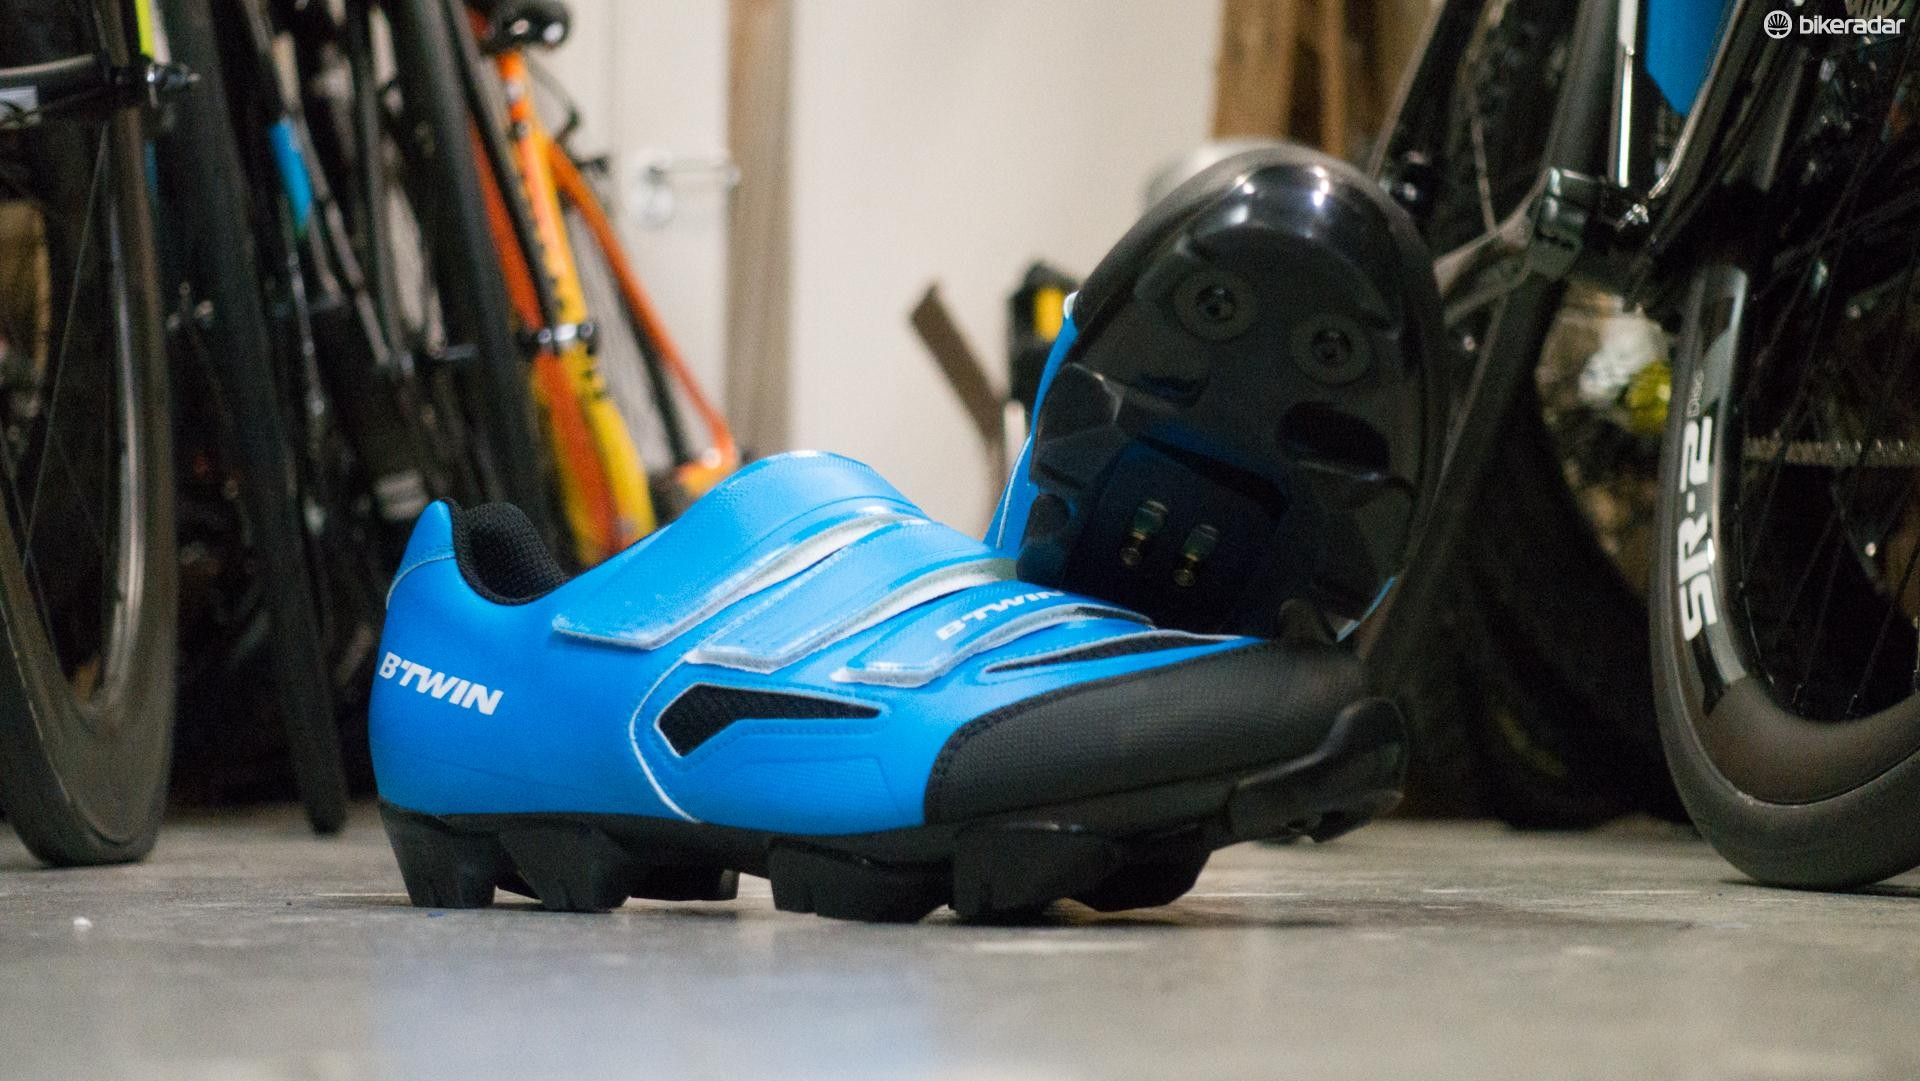 For £50 these XC shoes offer great value for money